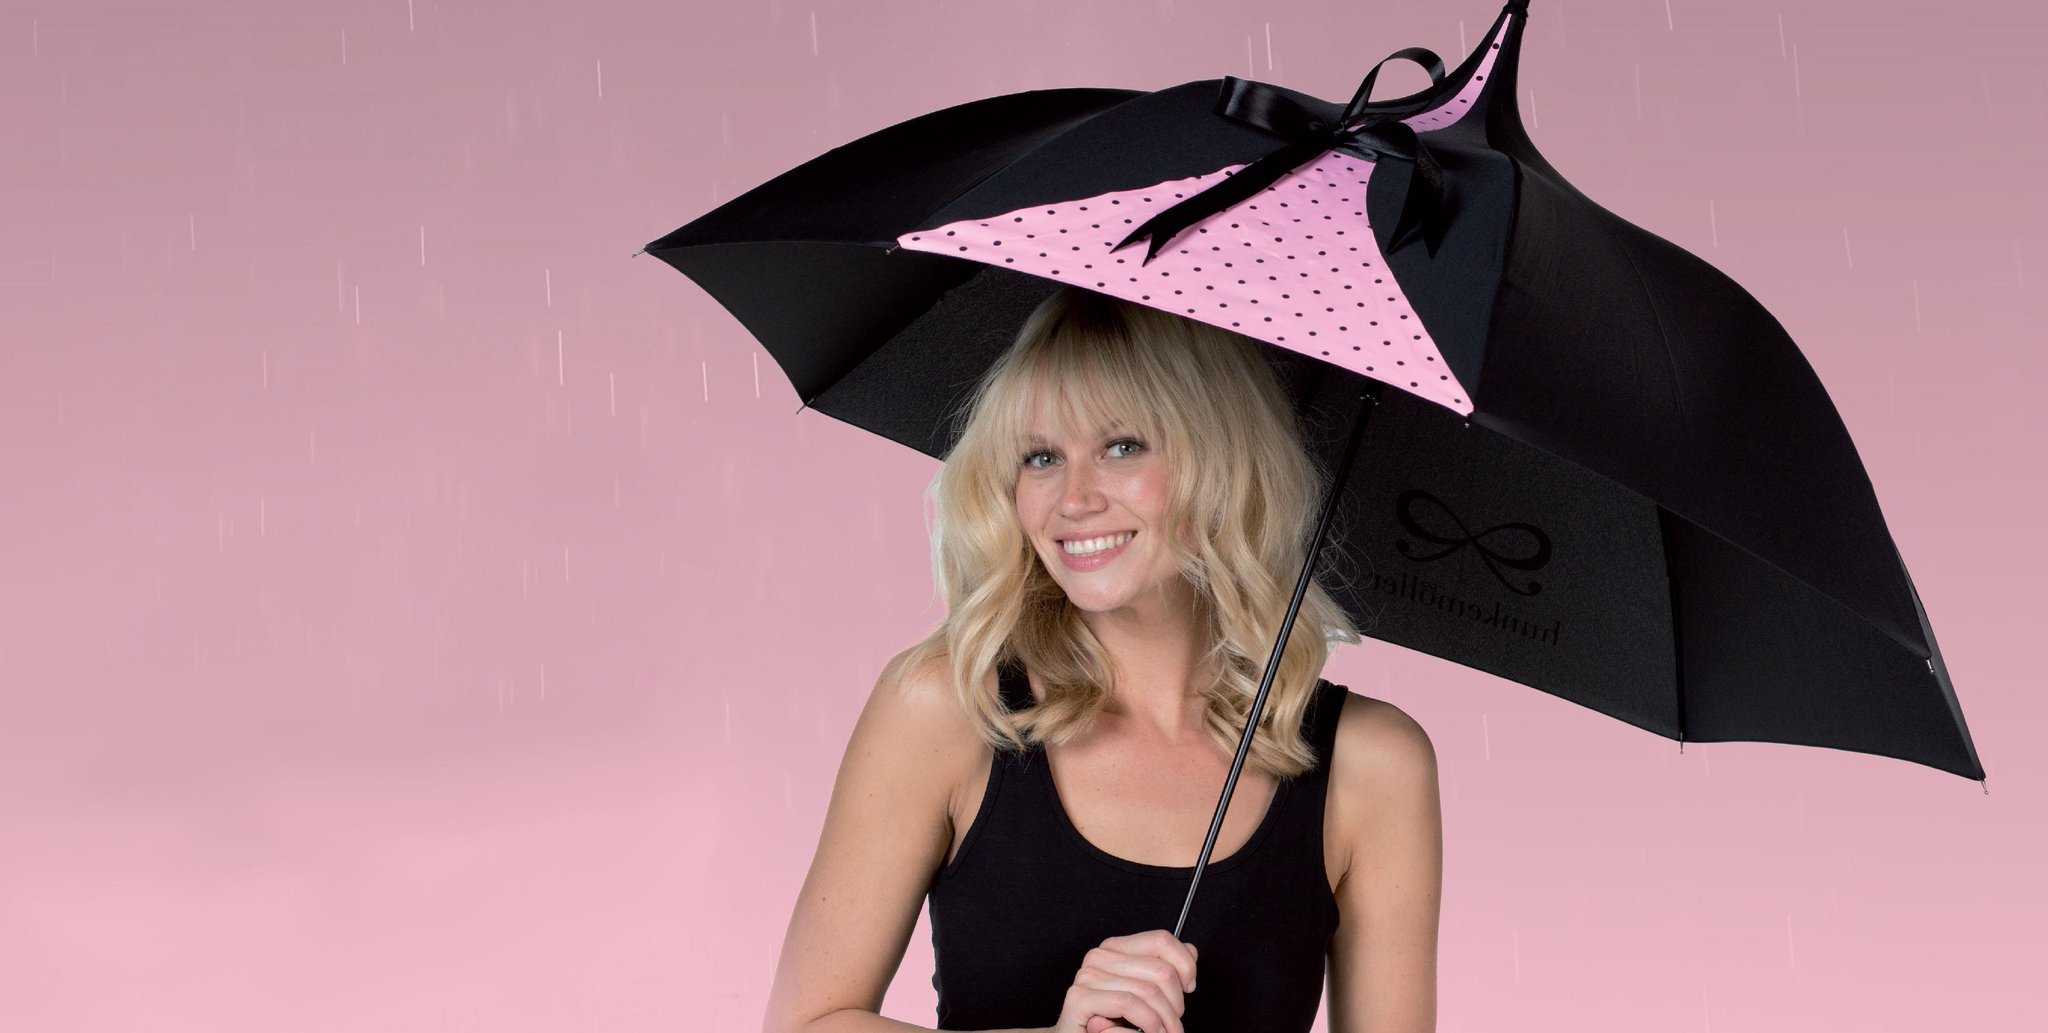 Under your umbrella! Spend more than €75 in store now & receive the Hunkemöller umbrella for free! While stock lasts! http://t.co/ZD0xvPaLU0